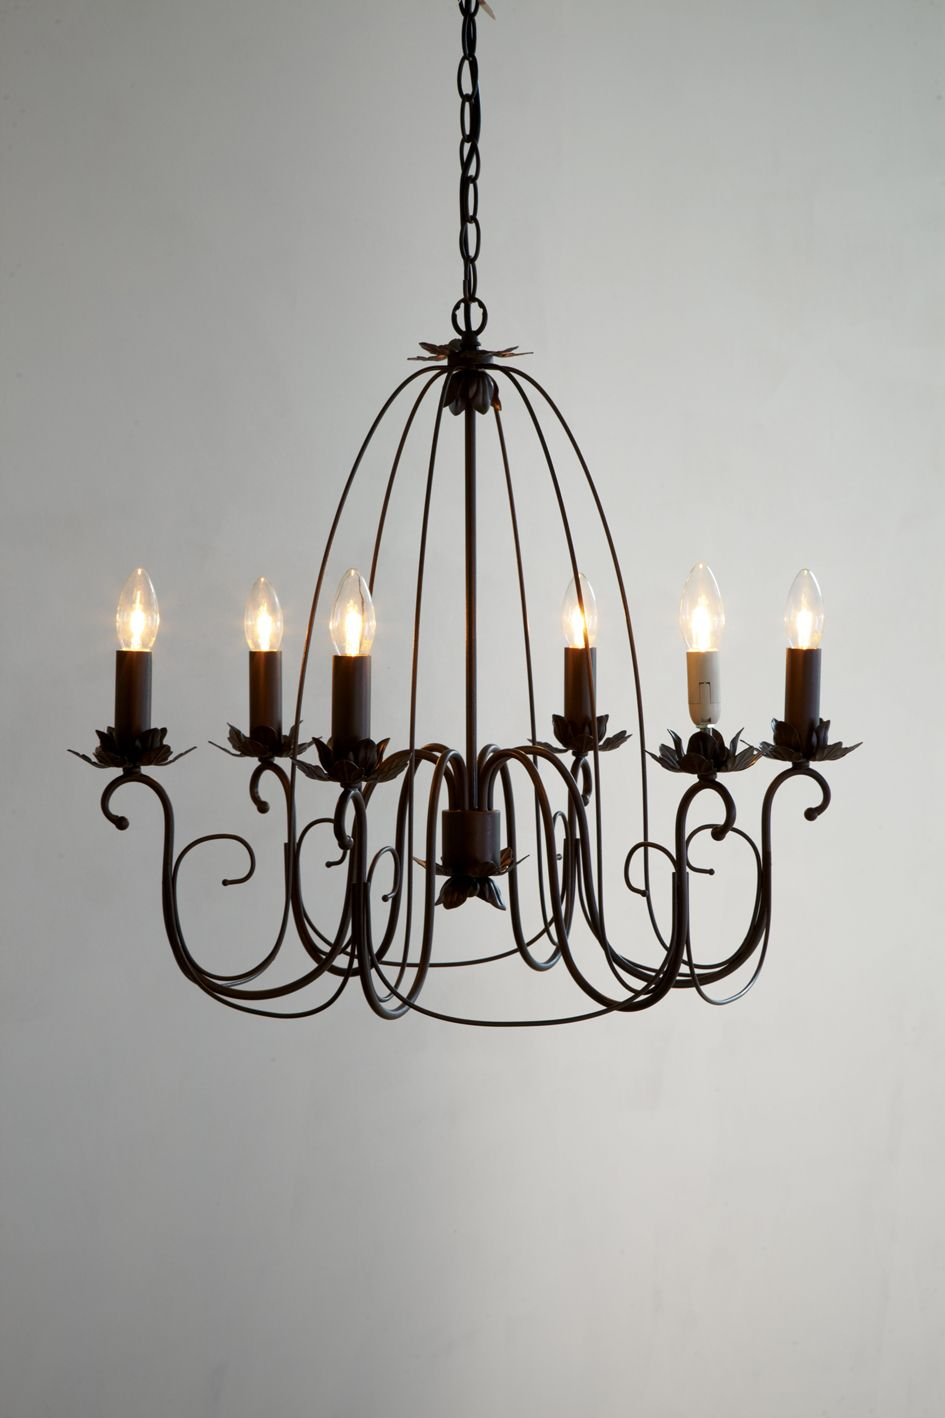 Laura ashley avize harrison lnear leaf chandelier 61290 tl laura ashley avize harrison lnear leaf chandelier 61290 tl evmanya arubaitofo Choice Image